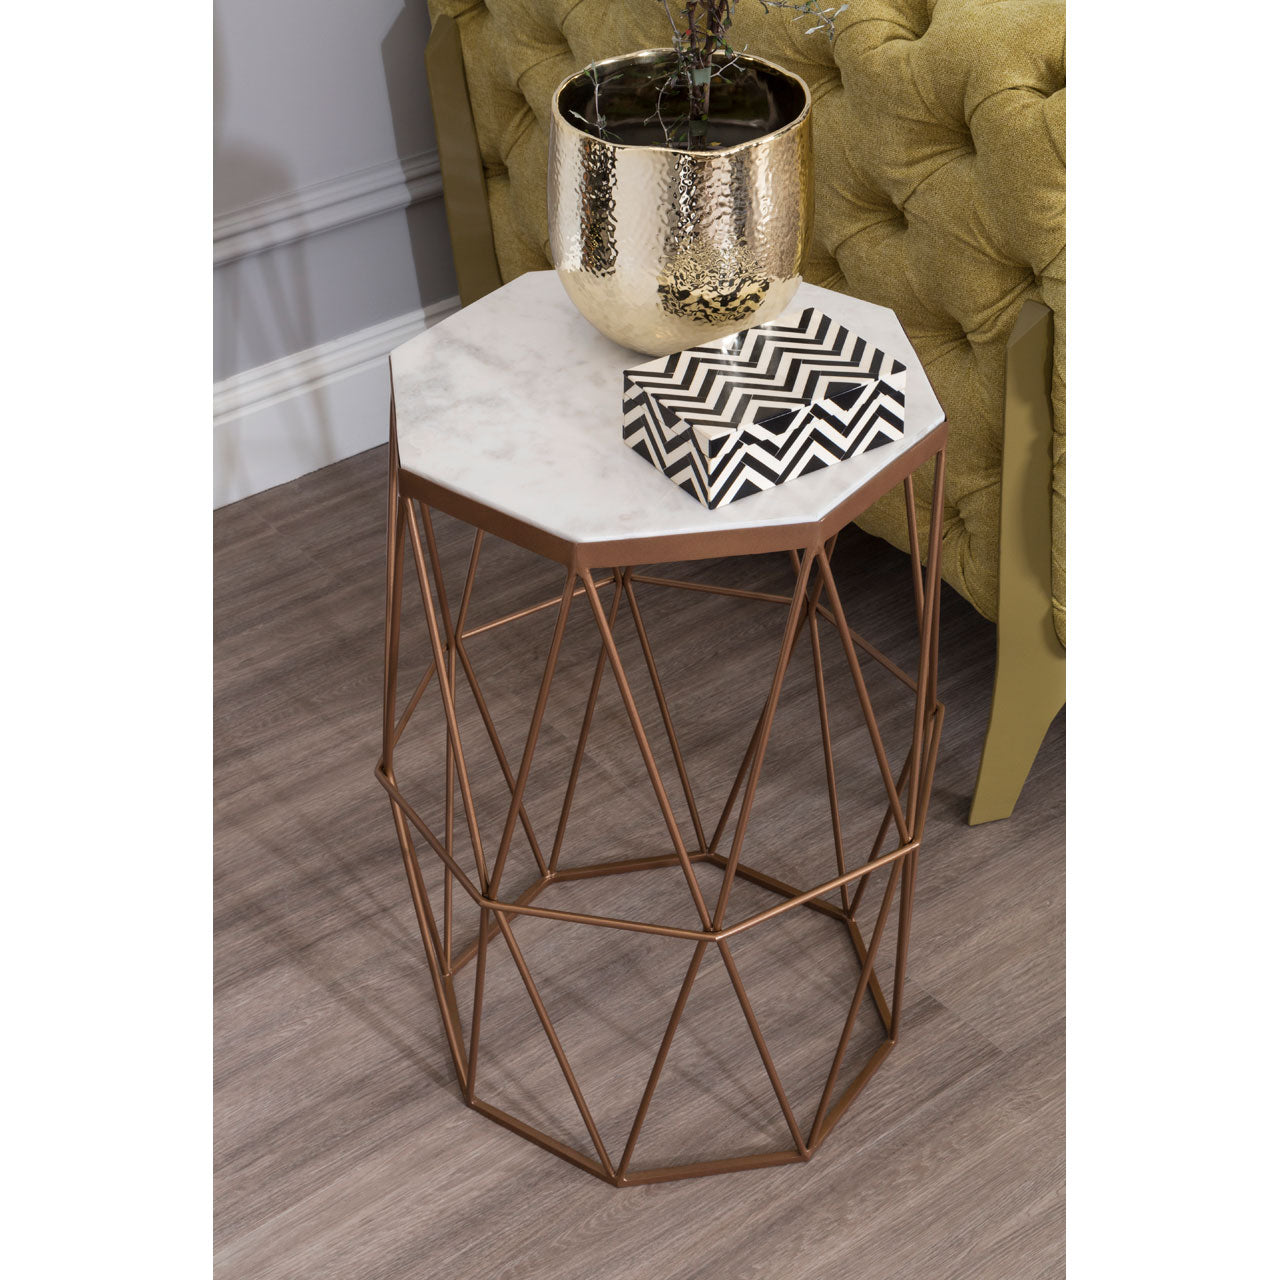 Shalimar Side Table in Gold